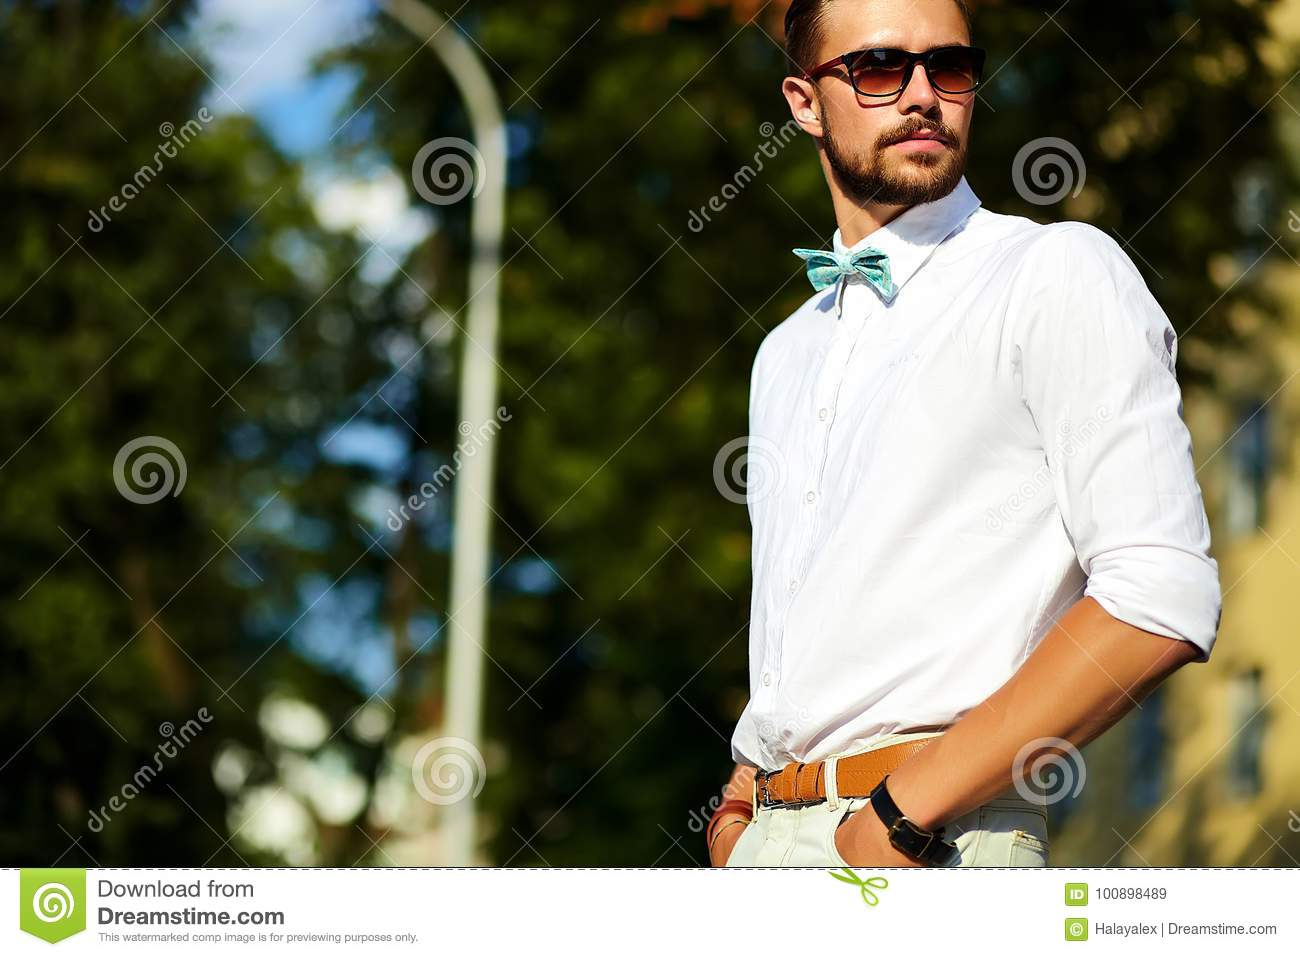 ed0a14e6fcfa Handsome hipster model man in stylish summer clothes posing on street  background in sunglasses